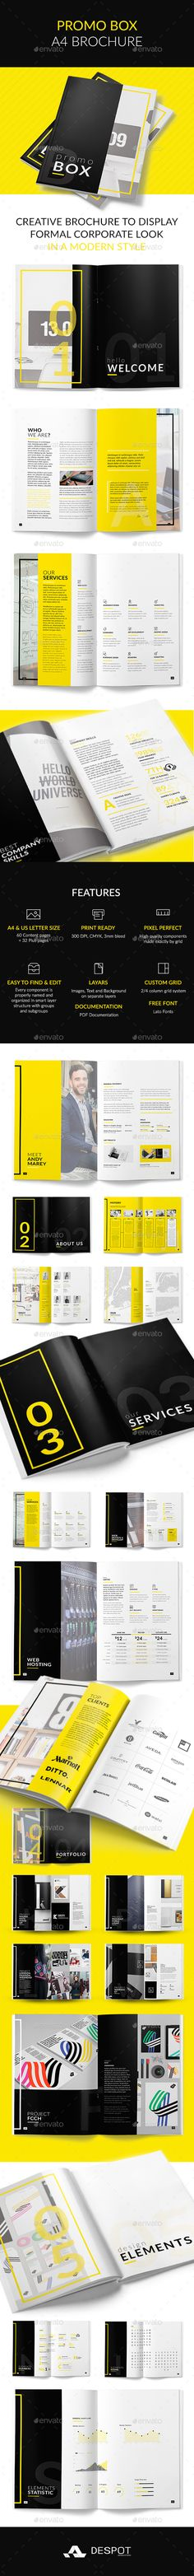 Promo BOX A4 Brochure Template PSD. Download here: https://graphicriver.net/item/promo-box-a4-brochure/17287203?ref=ksioks